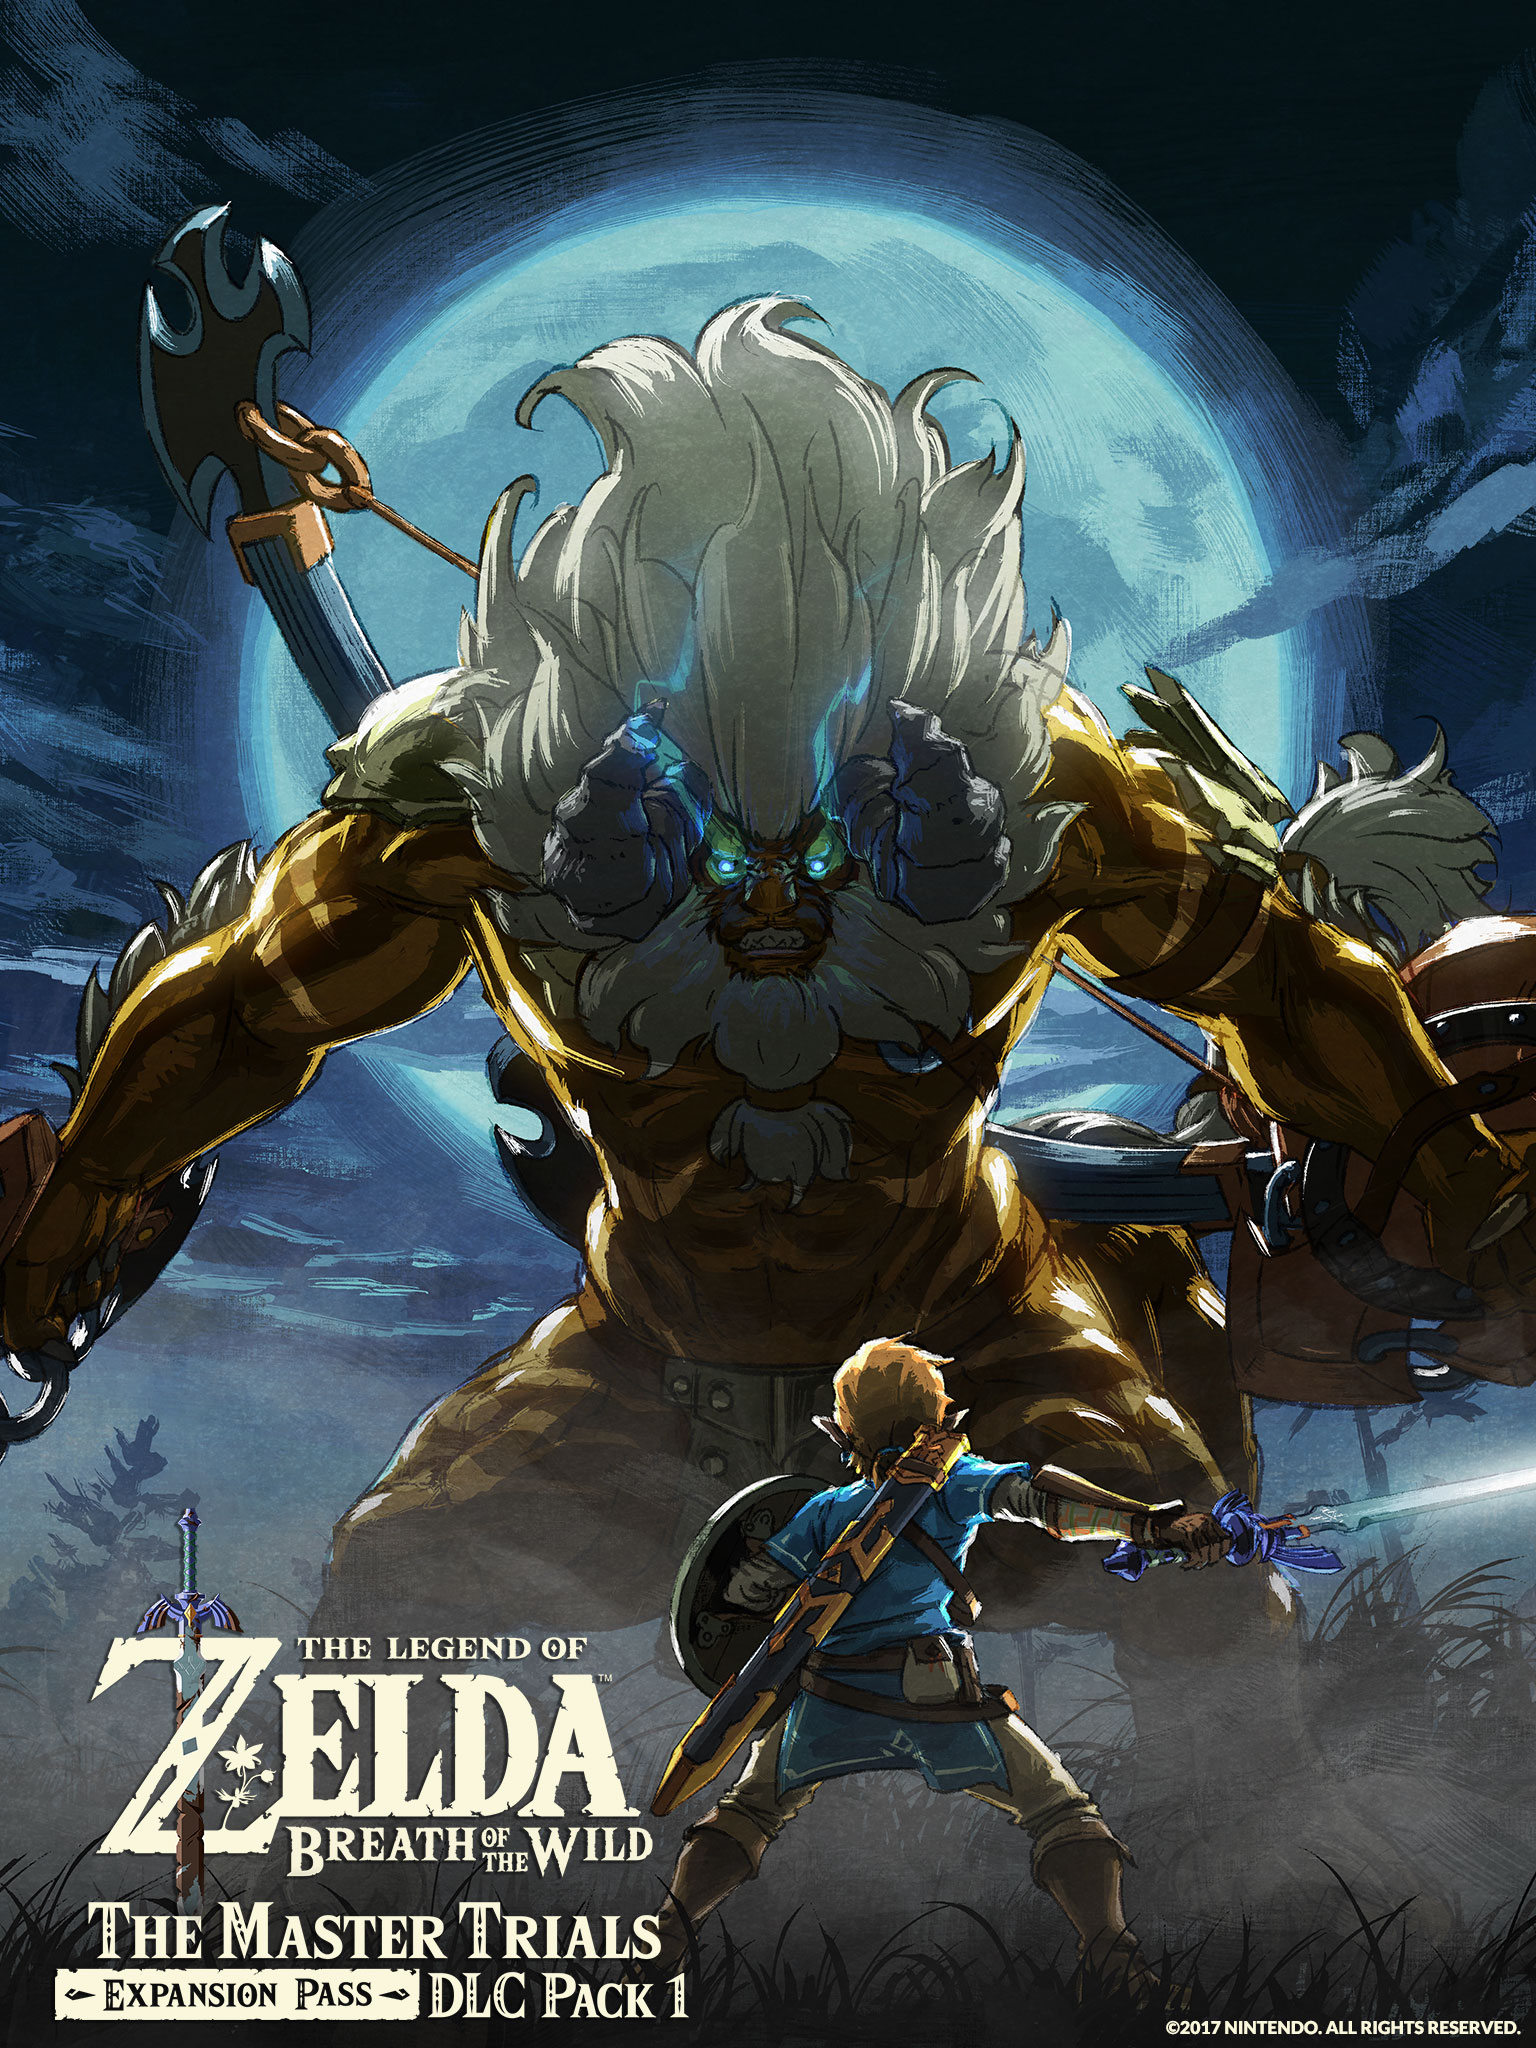 how to run zelda breath of wild game on pc